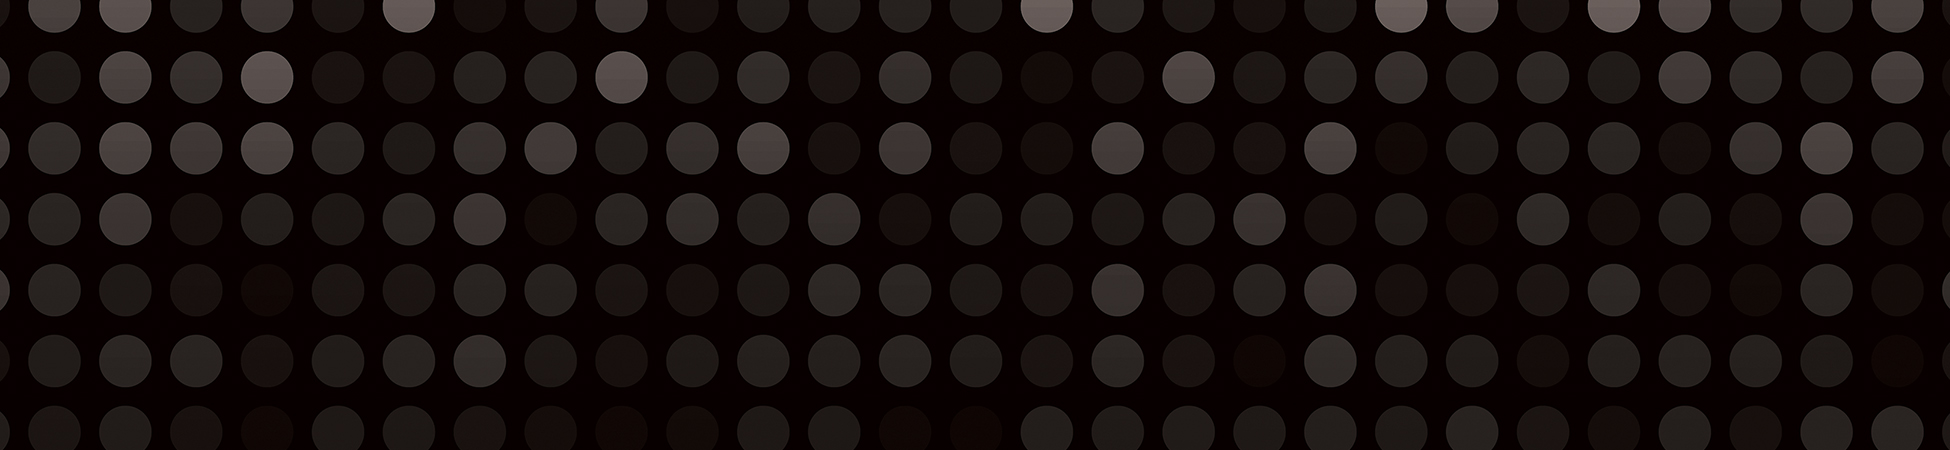 A black rectangle with faded white circles to form a textured background